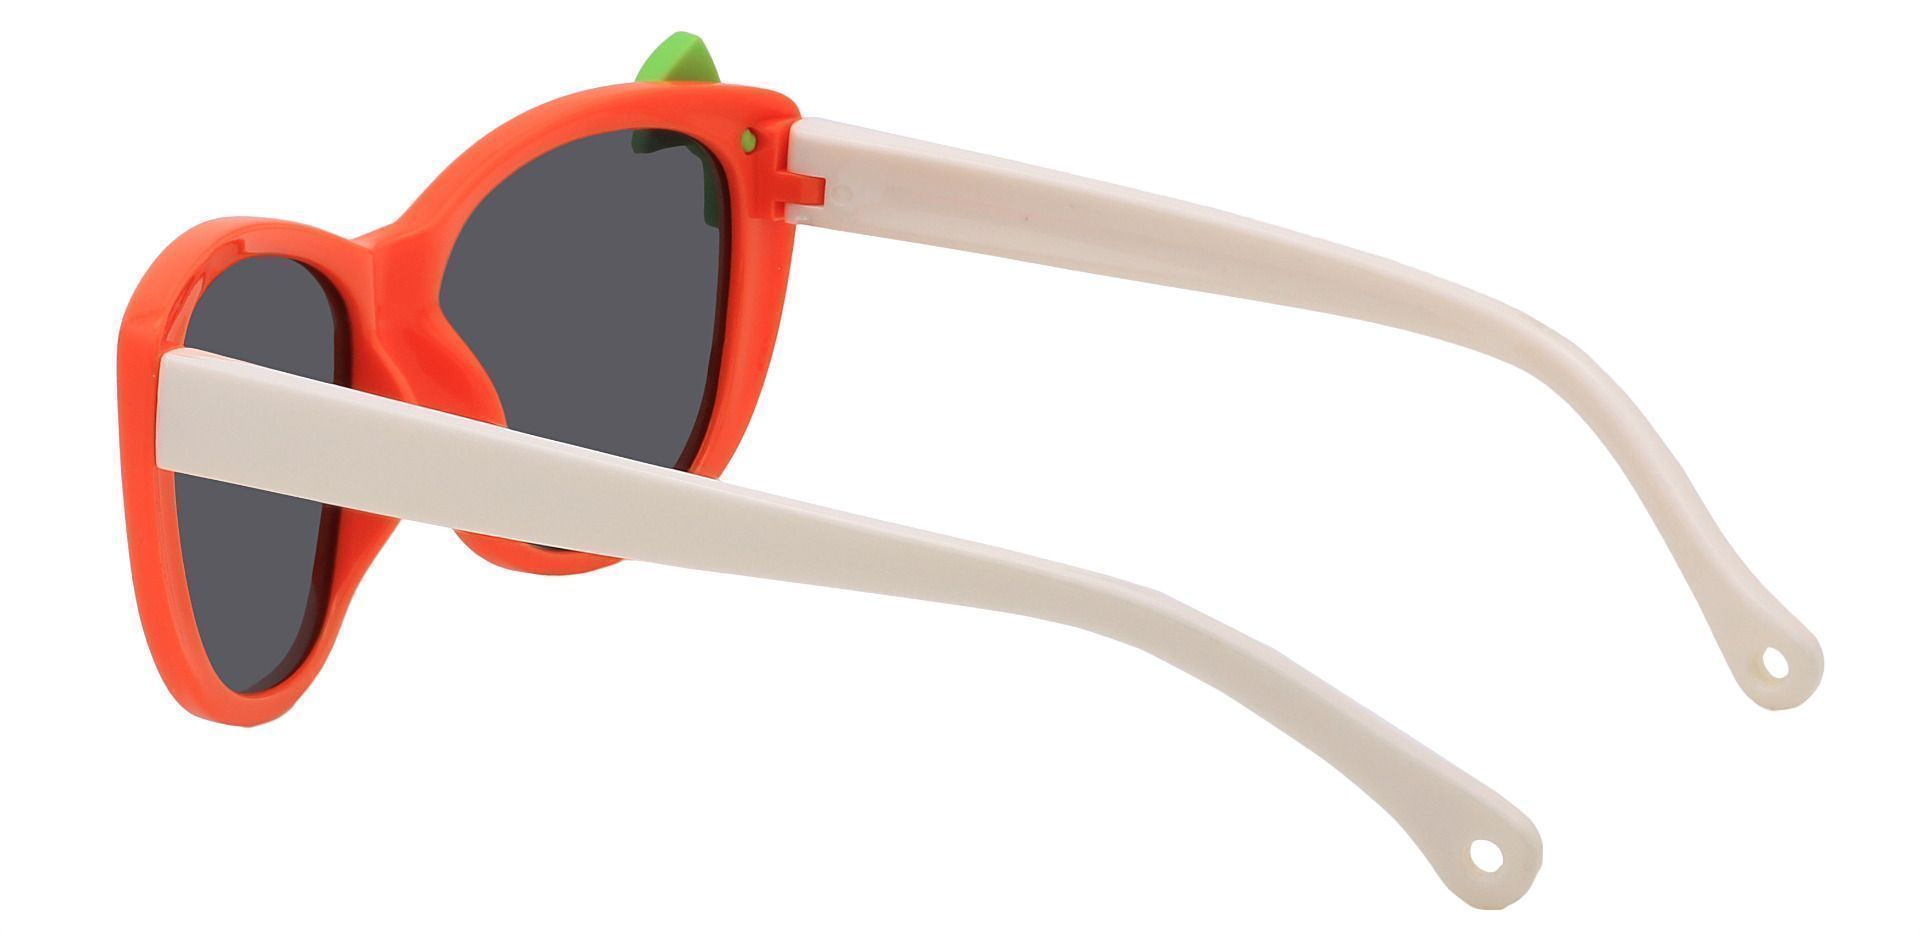 Mandarin Square Single Vision Sunglasses - Orange Frame With Gray Lenses